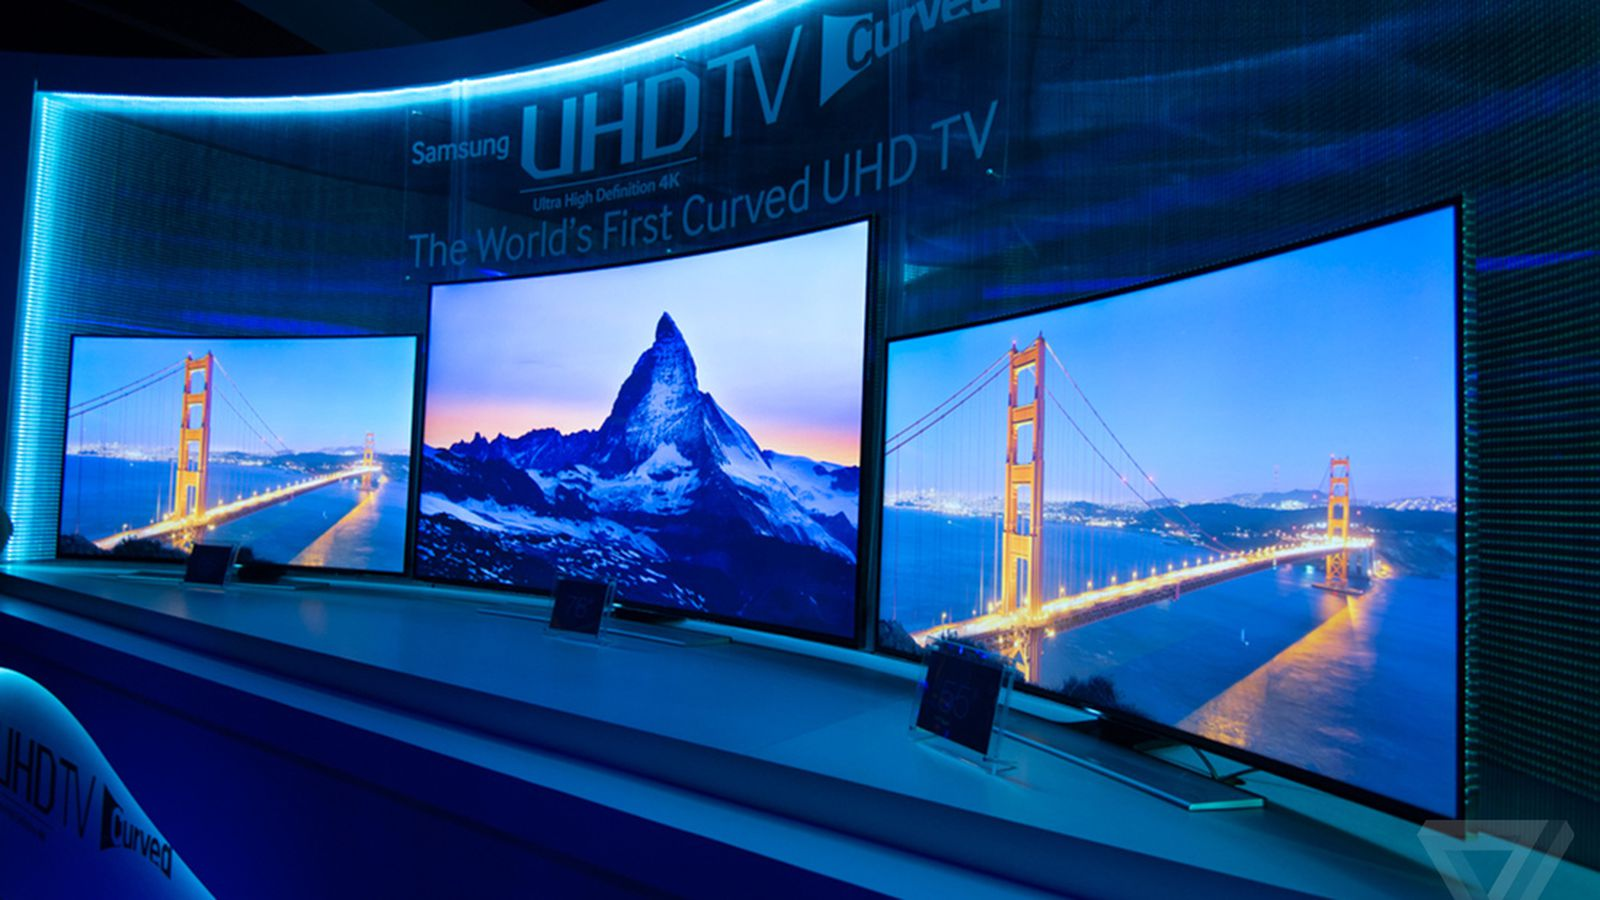 Samsung isn't giving up on curved TVs, will release at least 22 more models worldwide